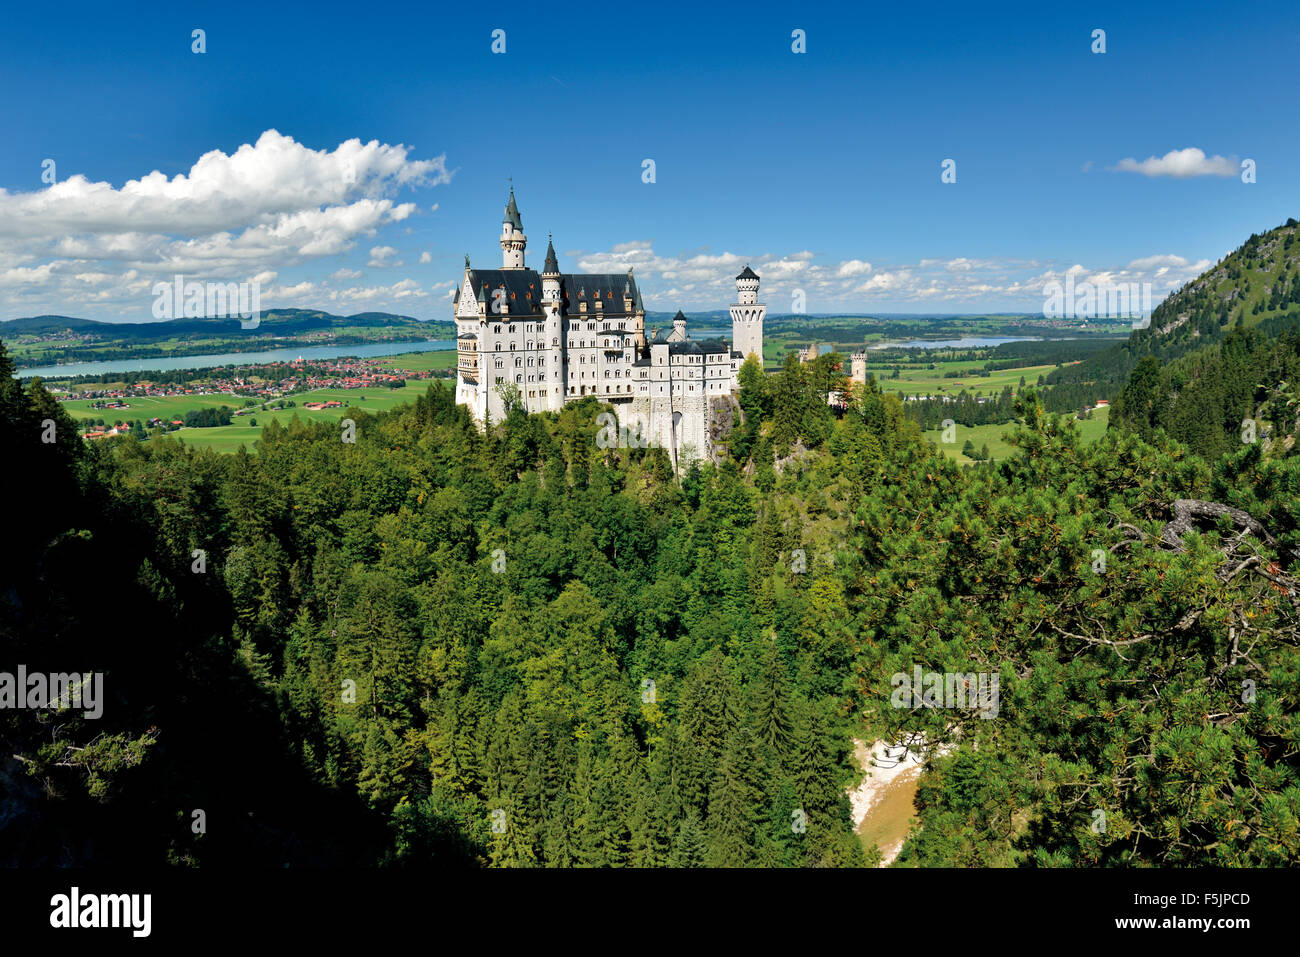 Germany: View to famous castle and palace  'Neuschwanstein' in Bavaria - Stock Image